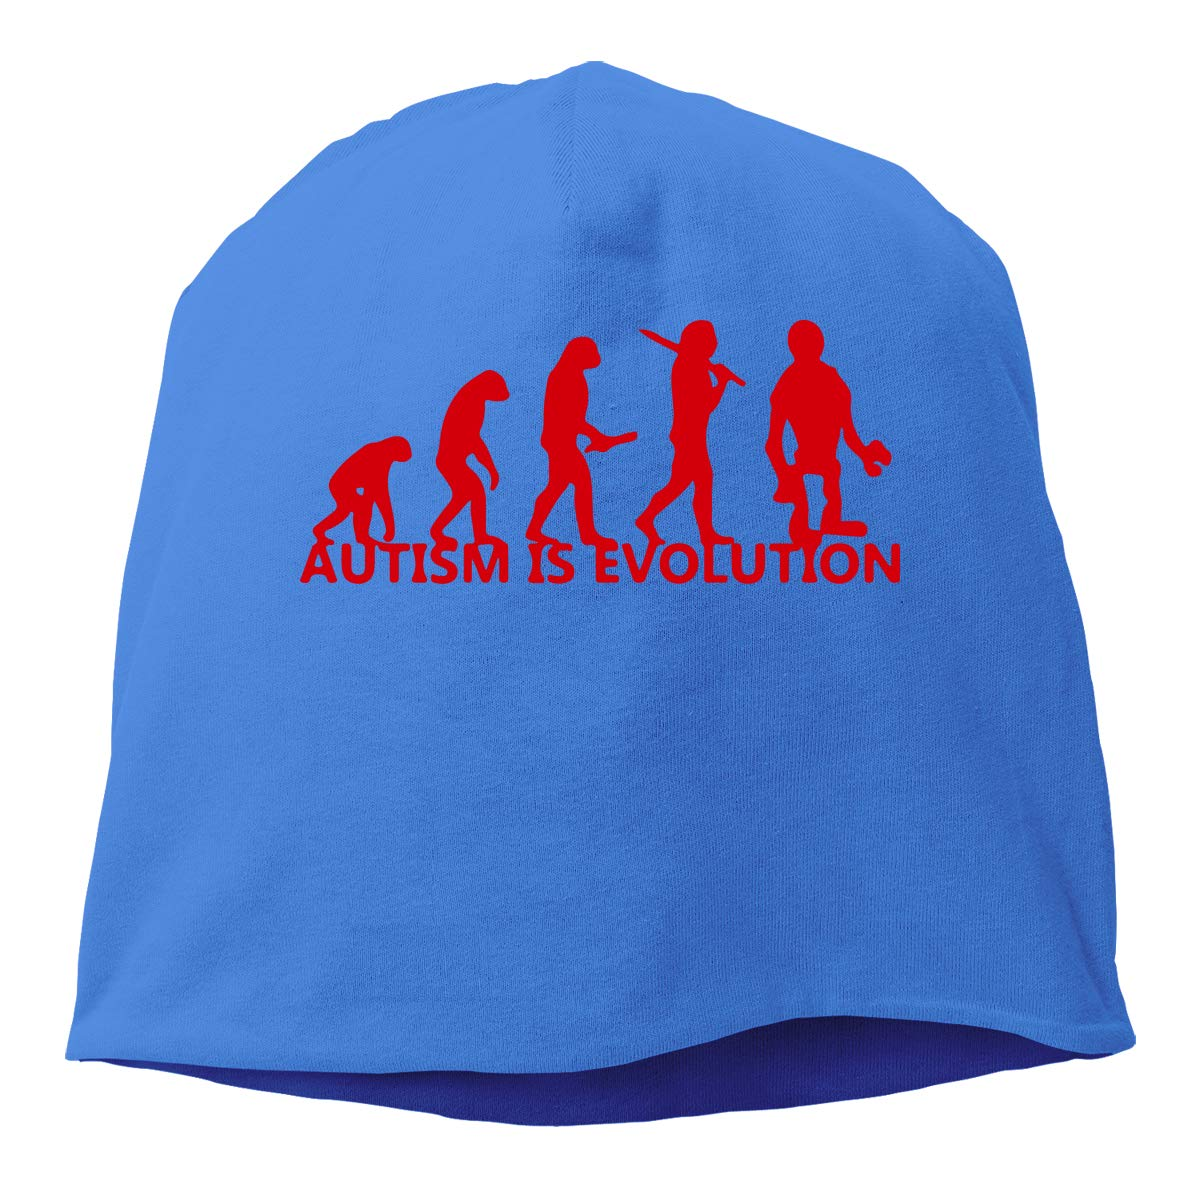 TLPM9LKMBM Autism is Evolution-2 Beanie Skull Cap for Women and Men Winter Warm Knit Hat